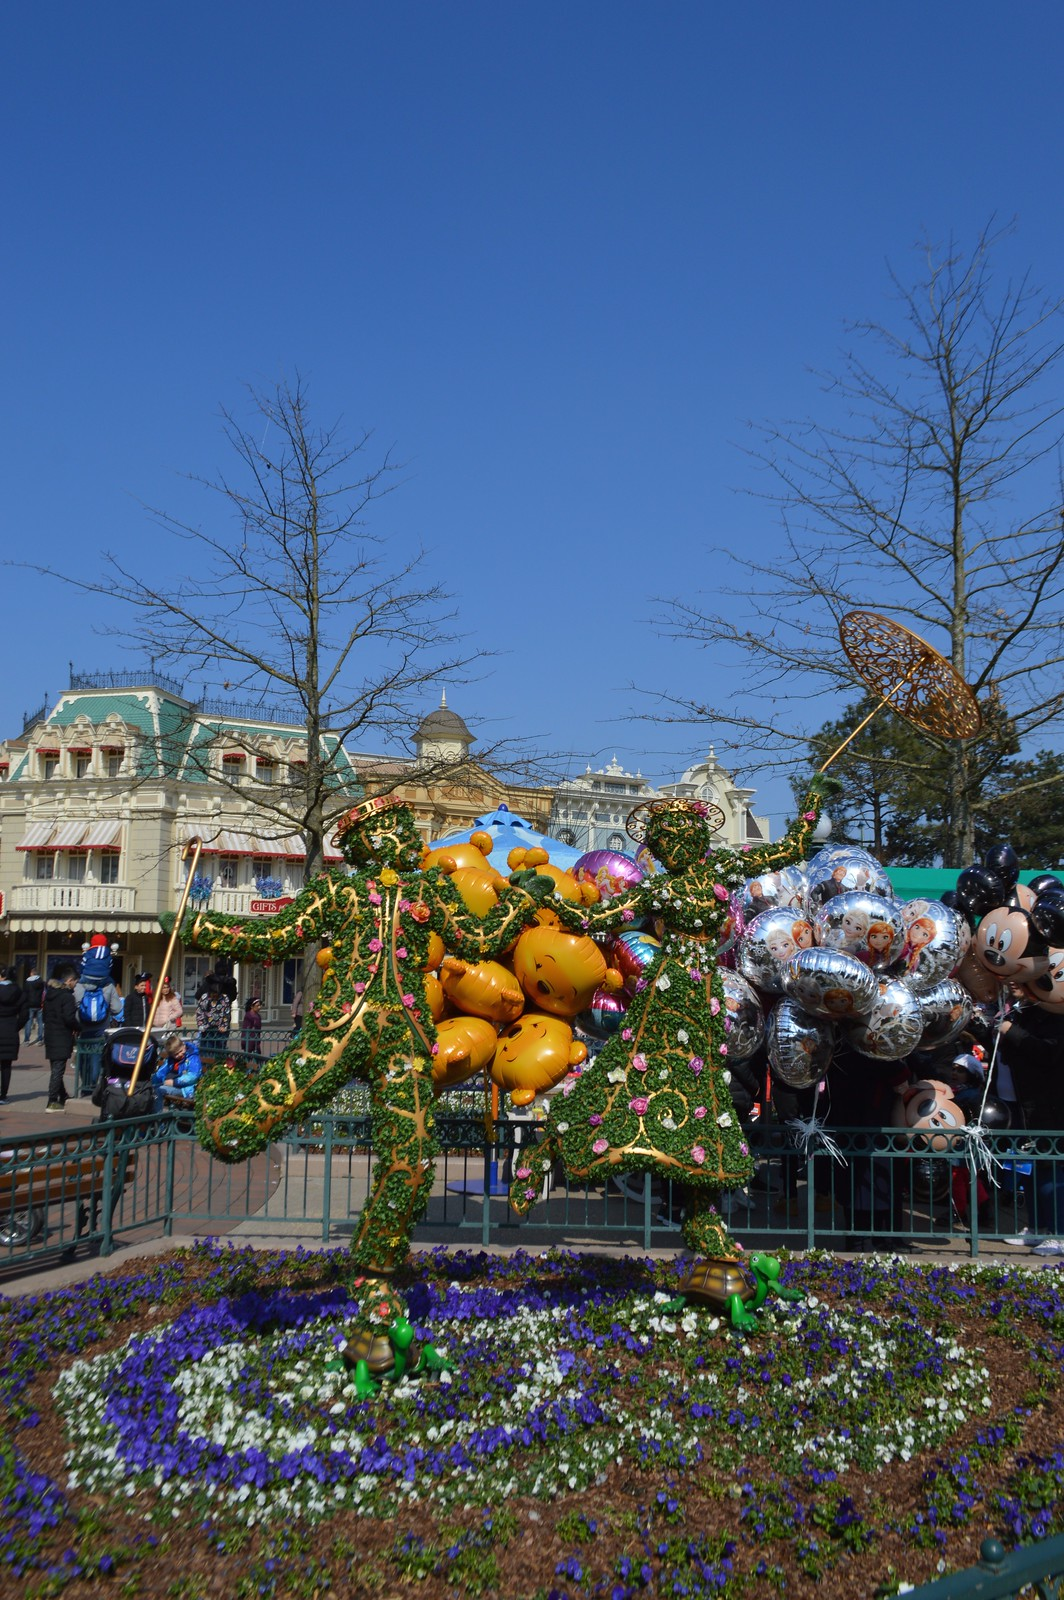 This is a picture of the Disneyland Paris main street floral display